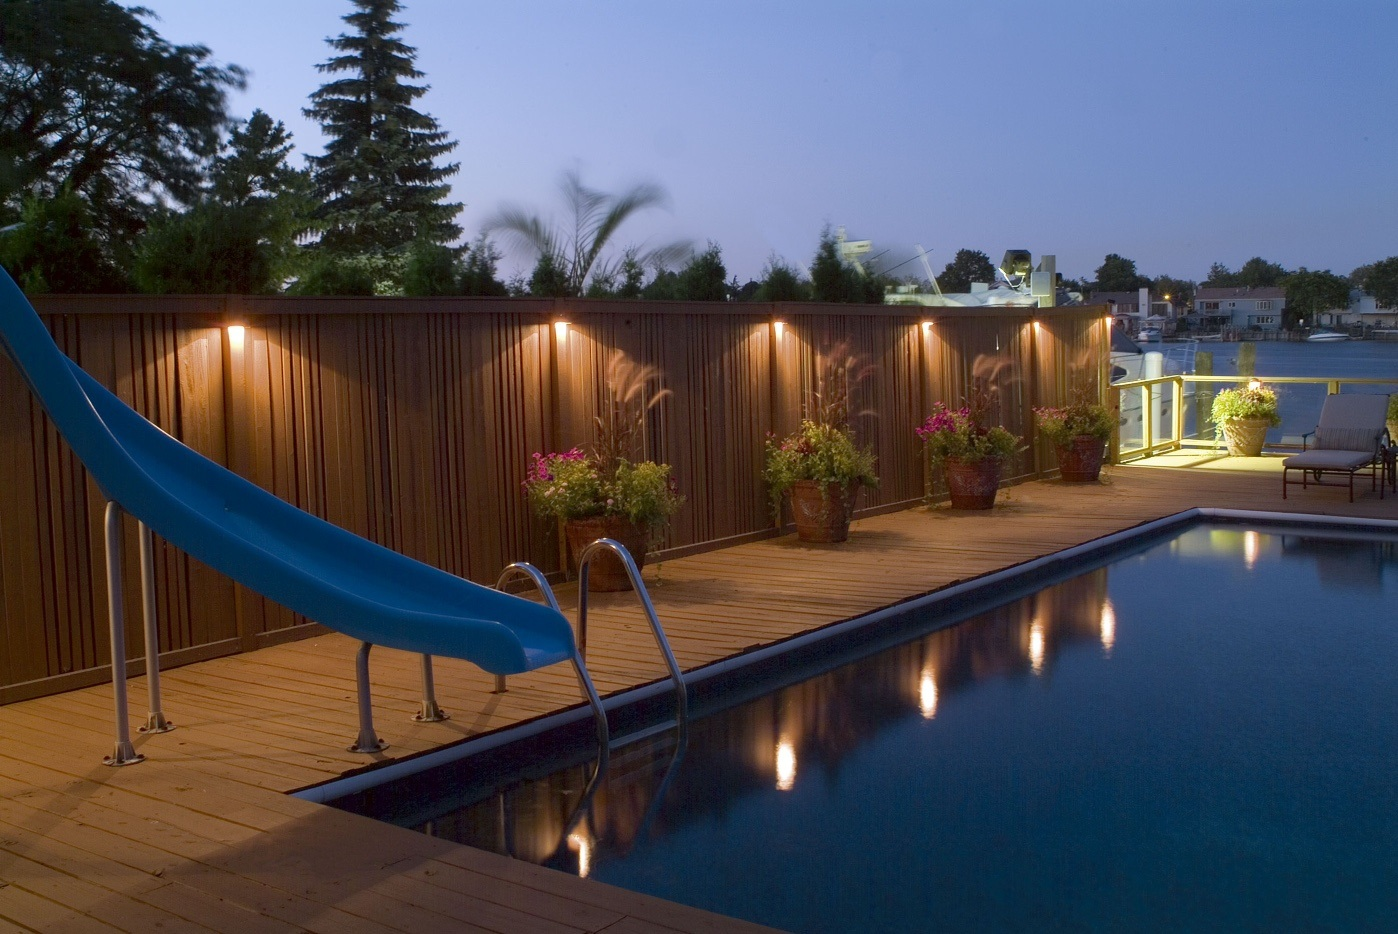 Deck and pool with lighting